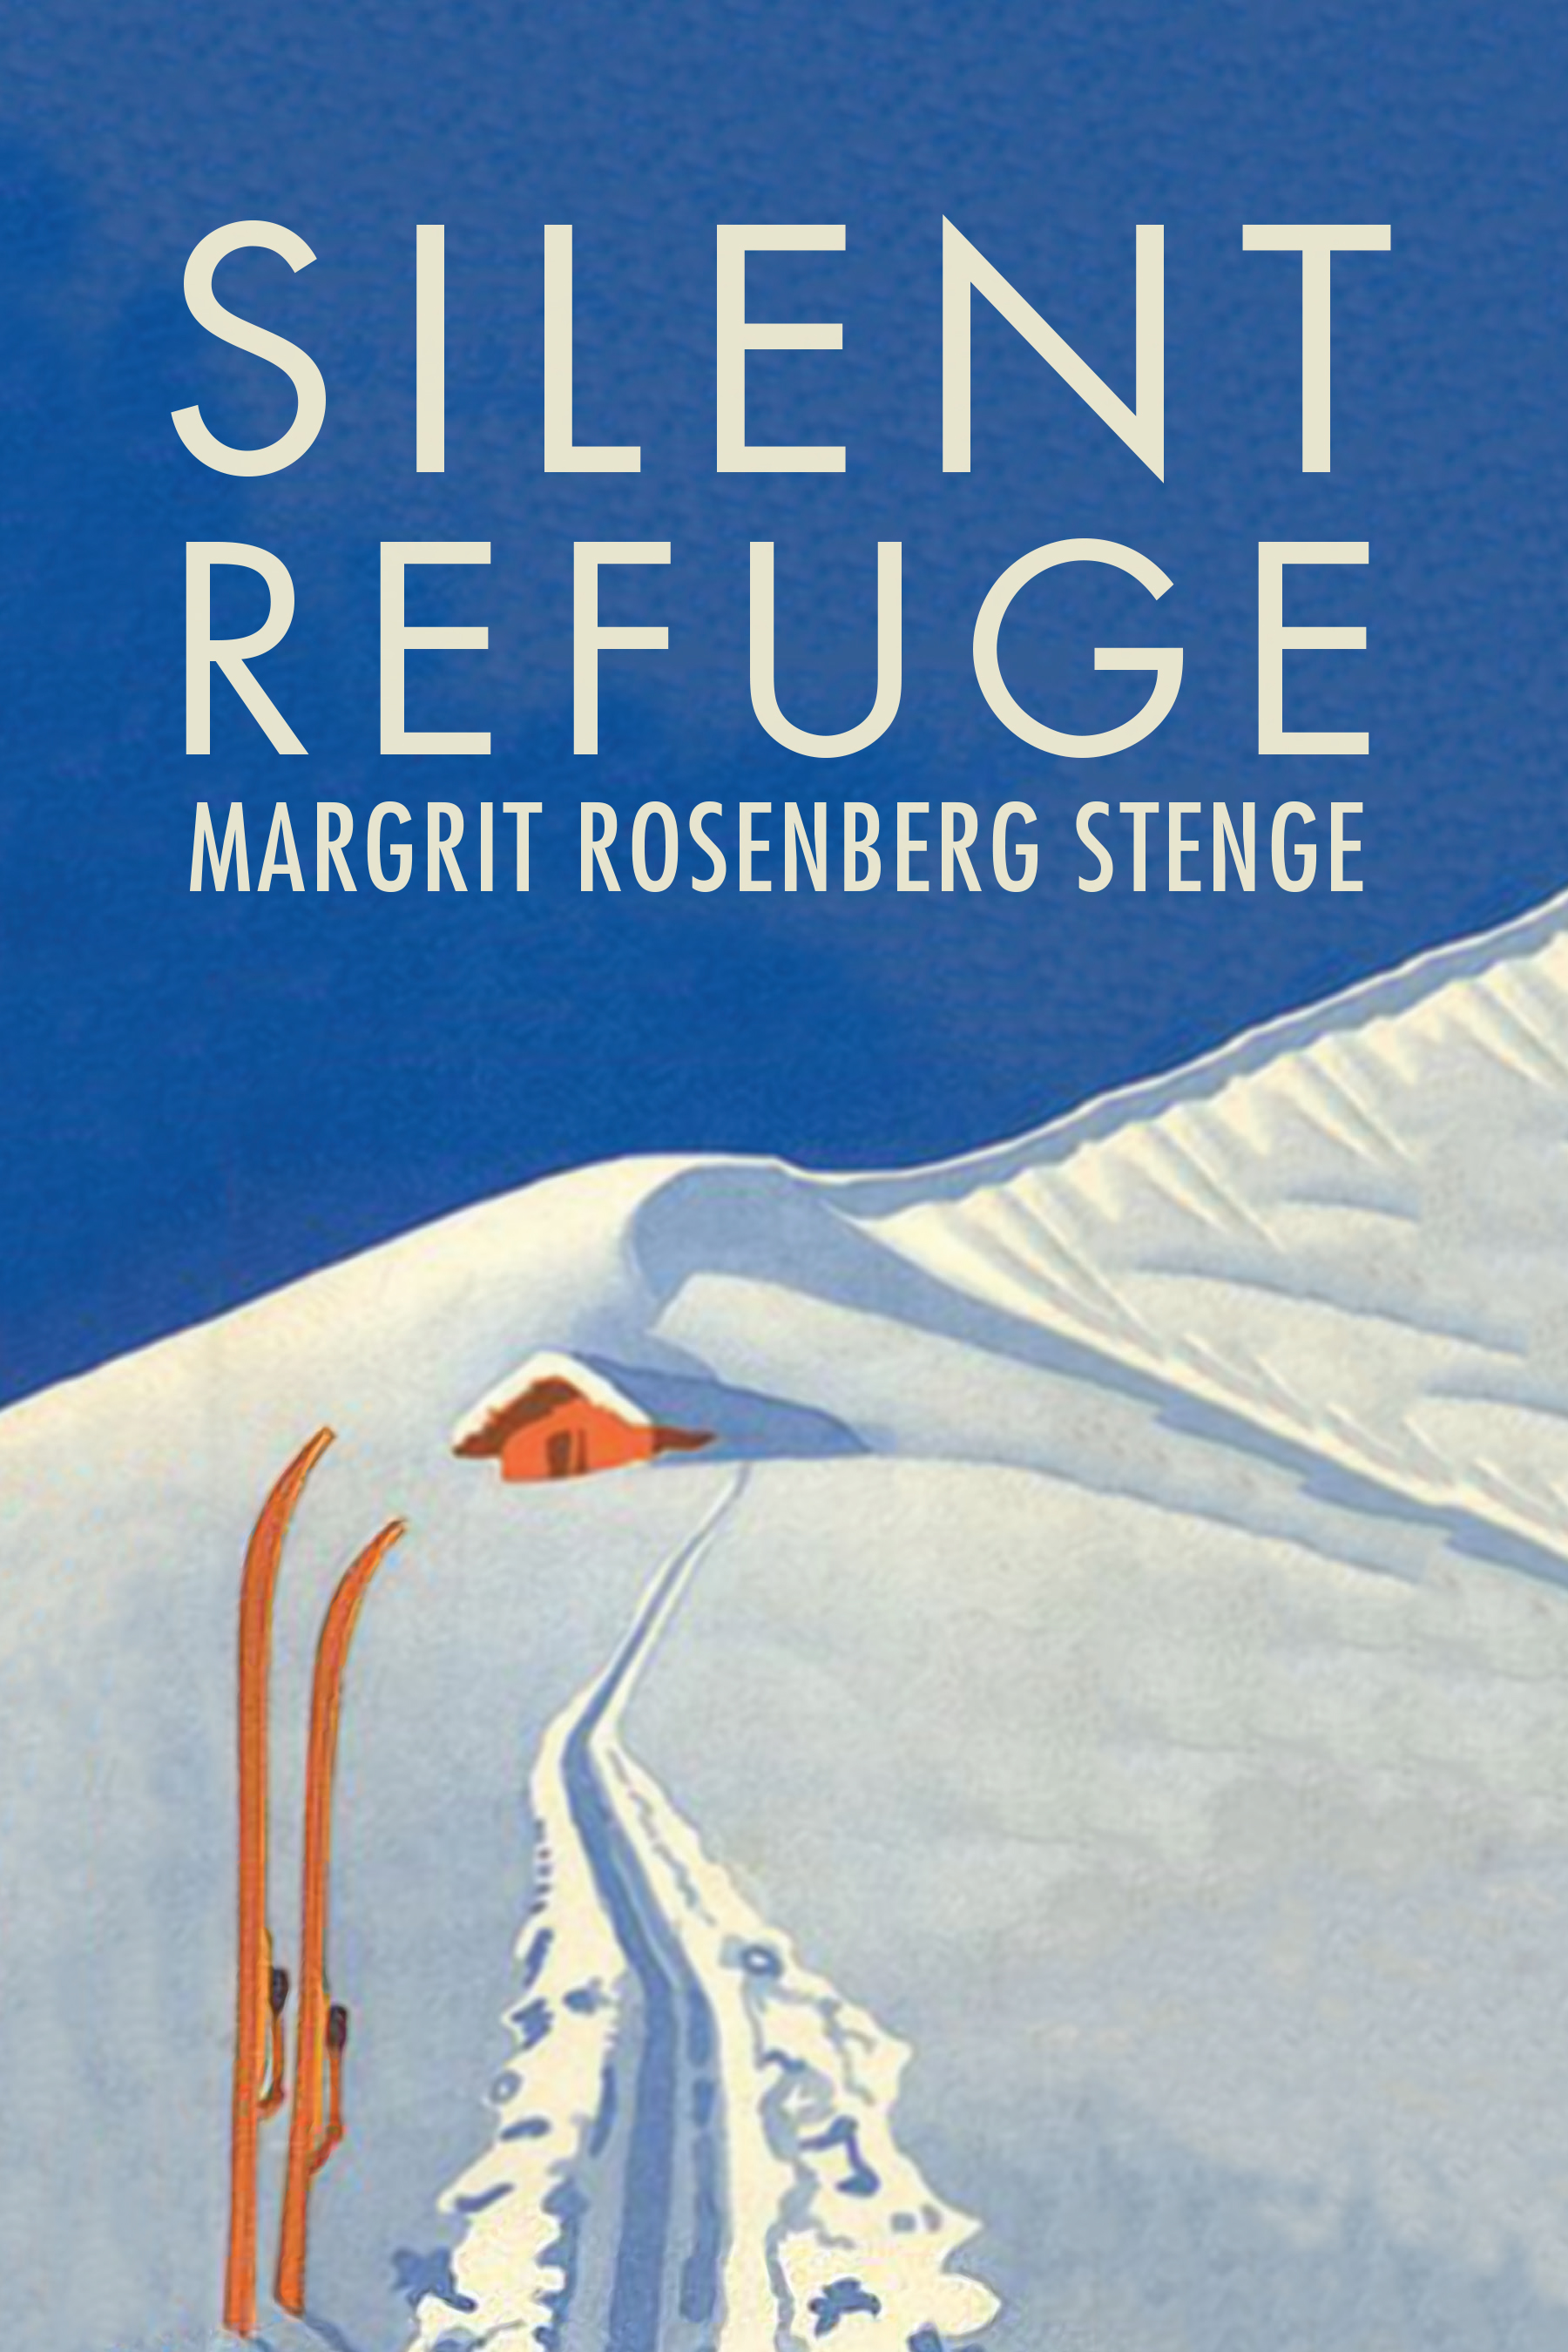 Silent Refuge (Traduction française à venir) book cover